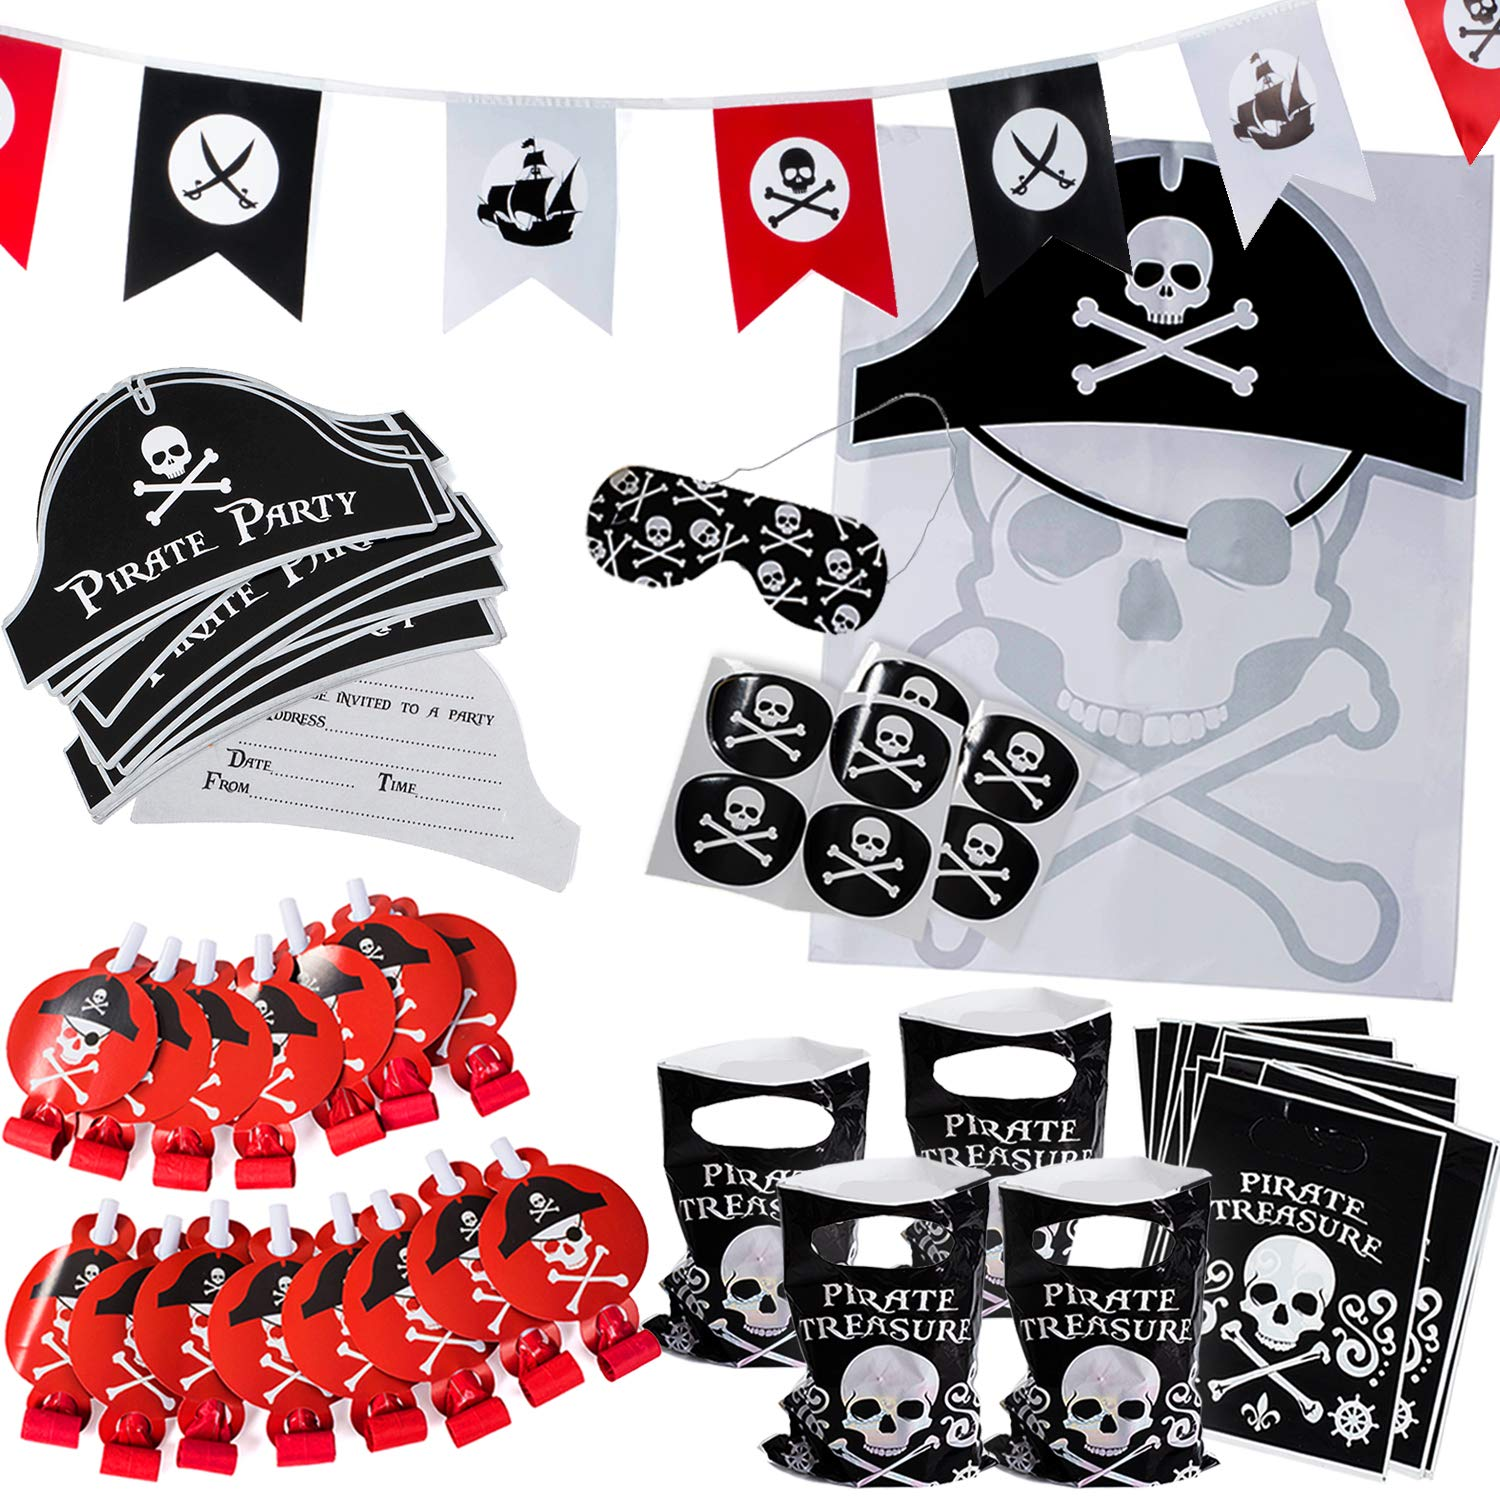 Pirate Party Supplies for Kids Birthday - Set for 12 Guests